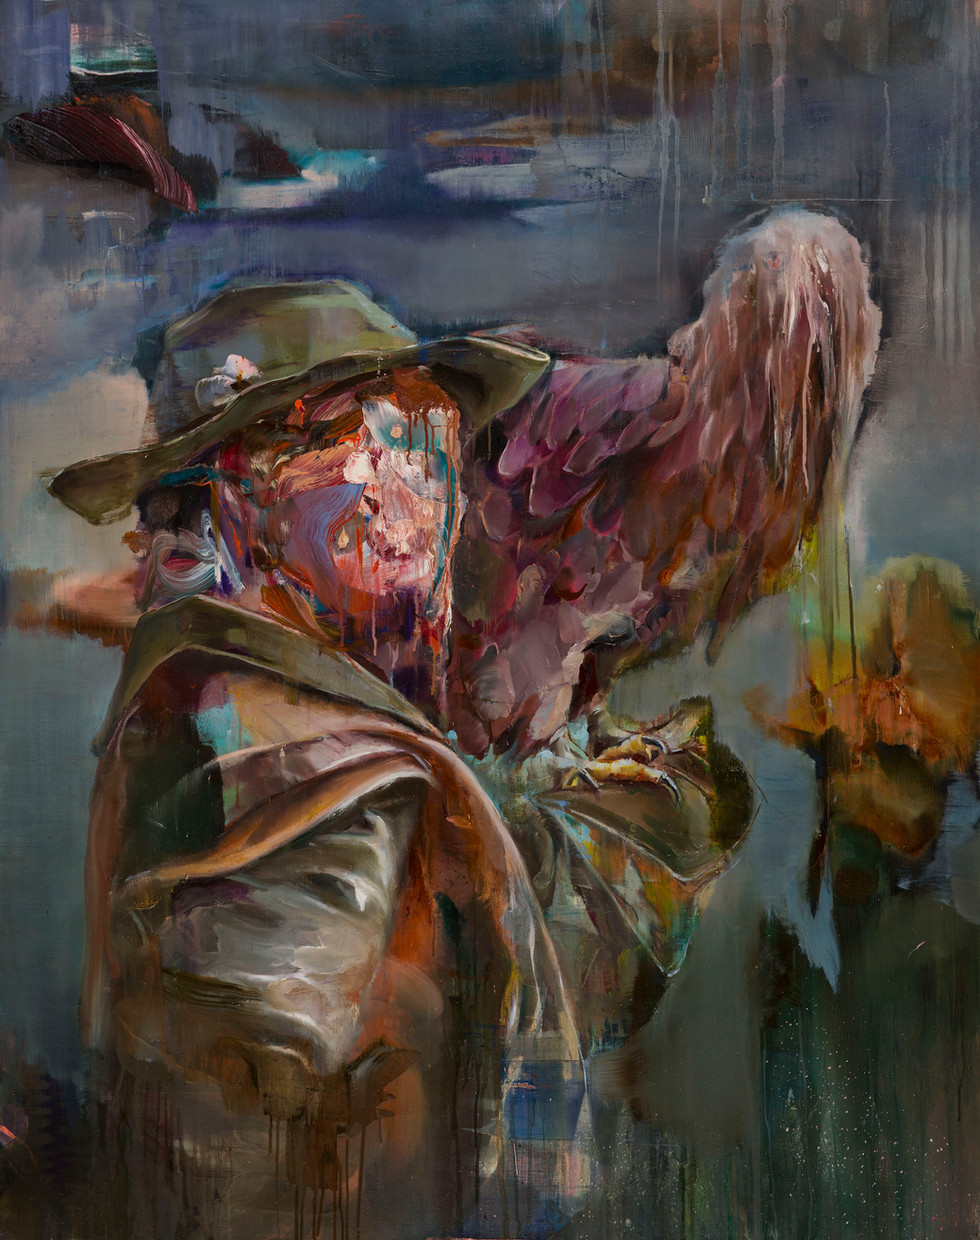 Falkner, 150 x 120 cm, oil on linen, 2017